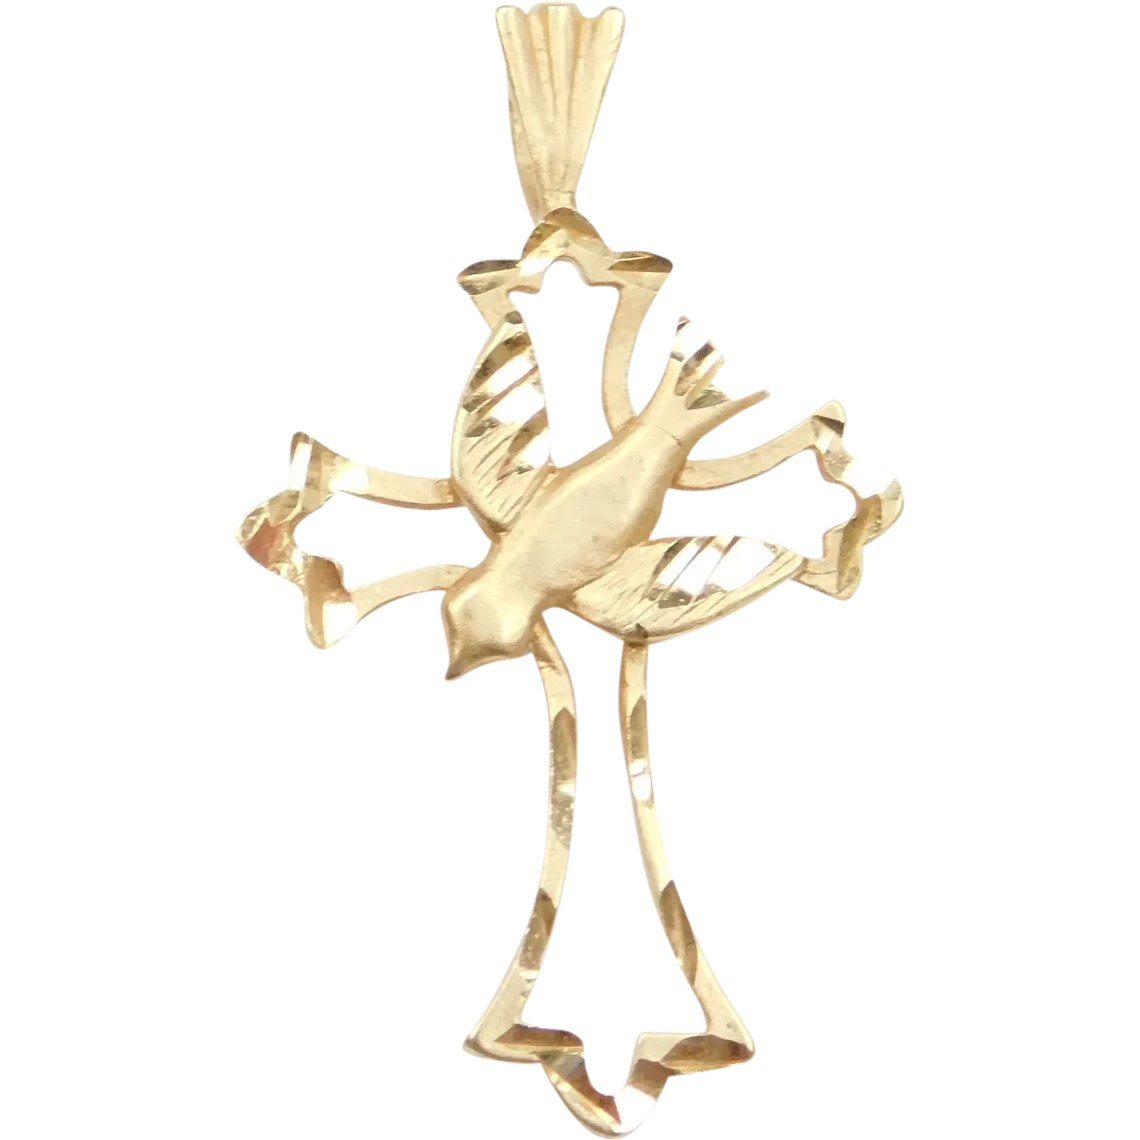 14k Yellow Gold Religious Cross with Holy Spirit Dove Pendant